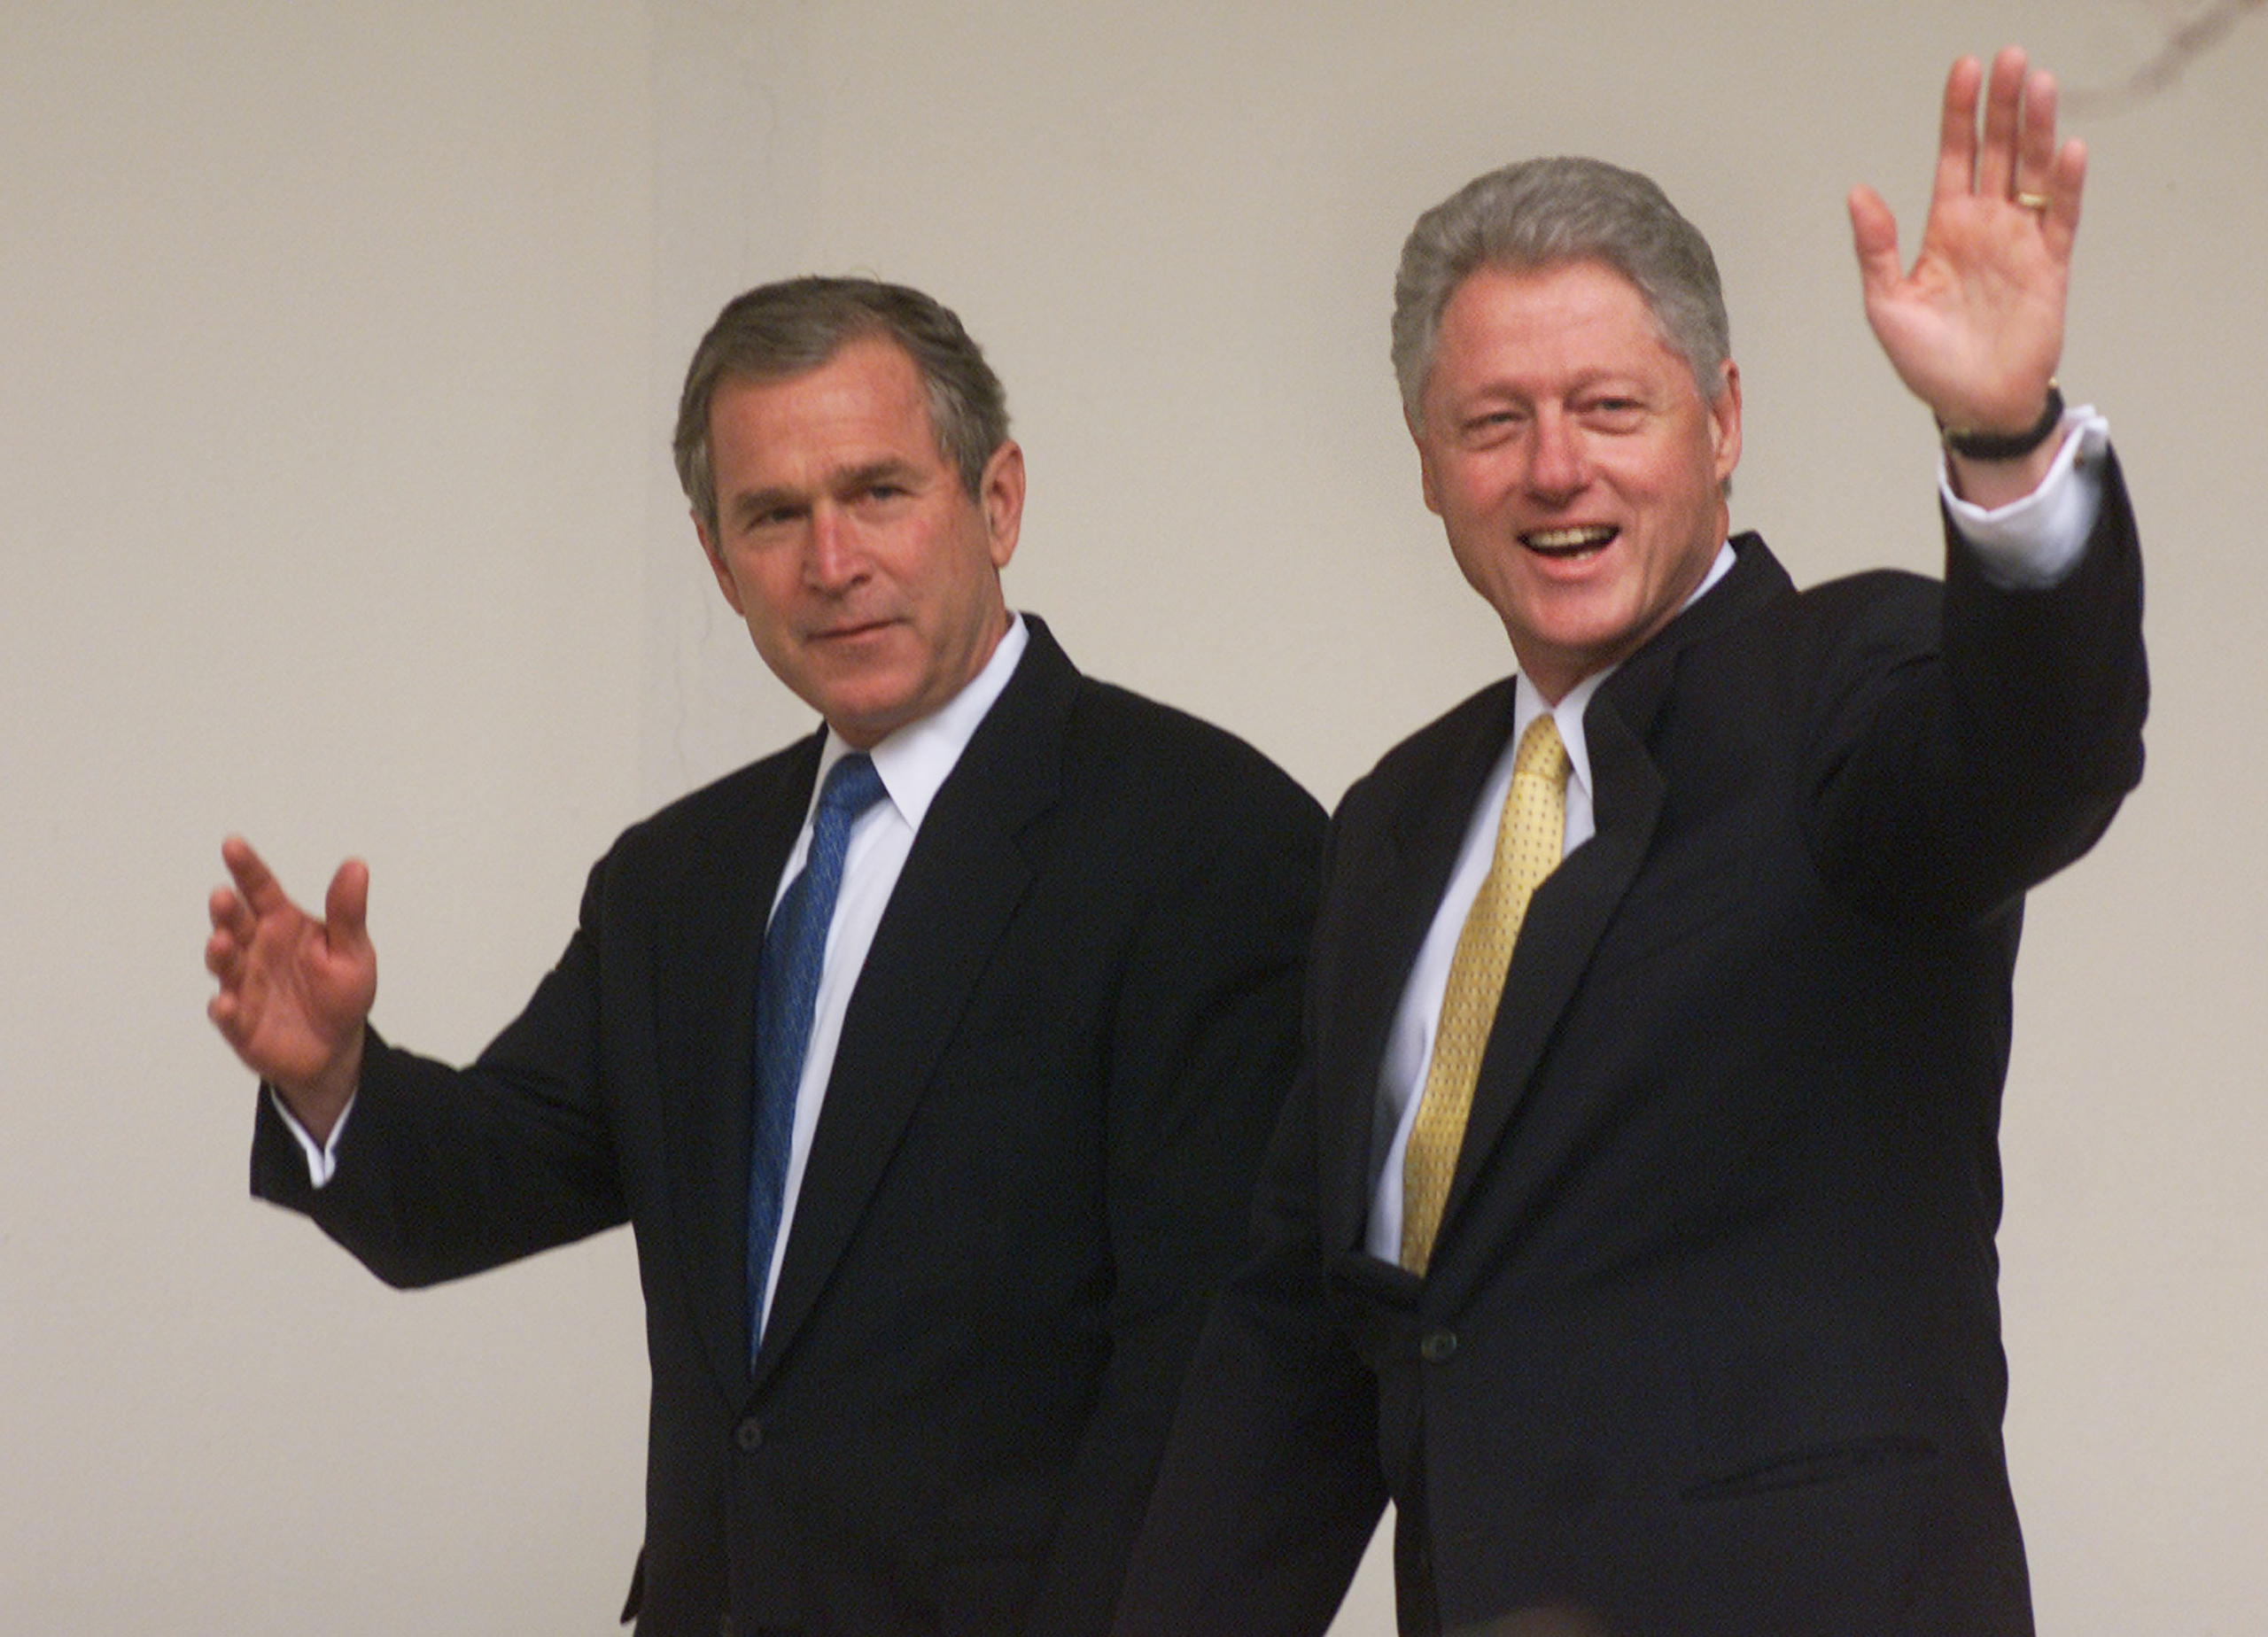 George W. Bush, left, and Bill Clinton wave before their meeting at the White House in Washington, D.C., on Dec. 19, 2000